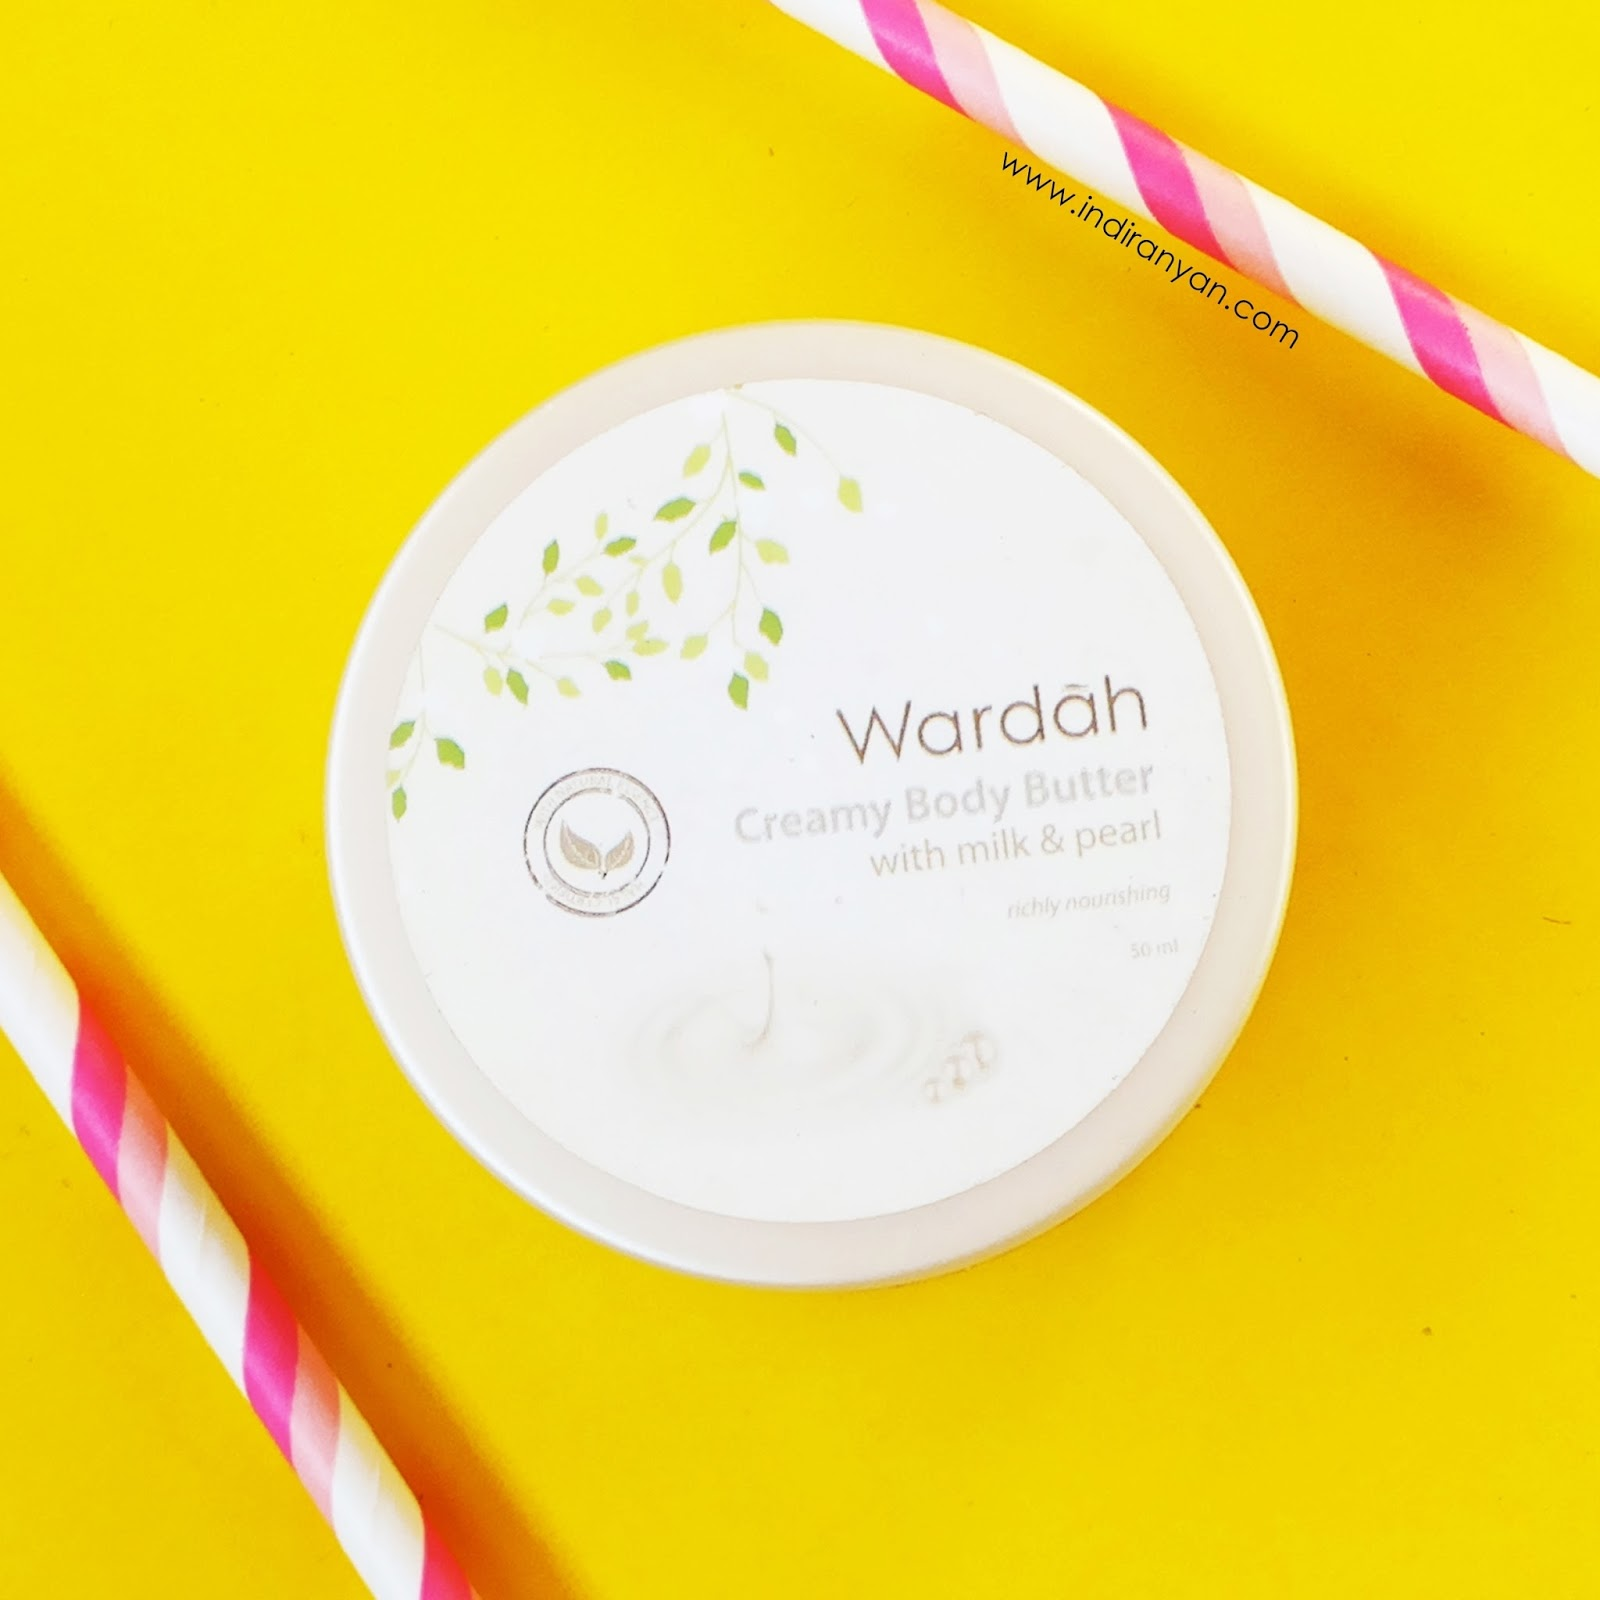 wardah-body-butter-milk-pearl